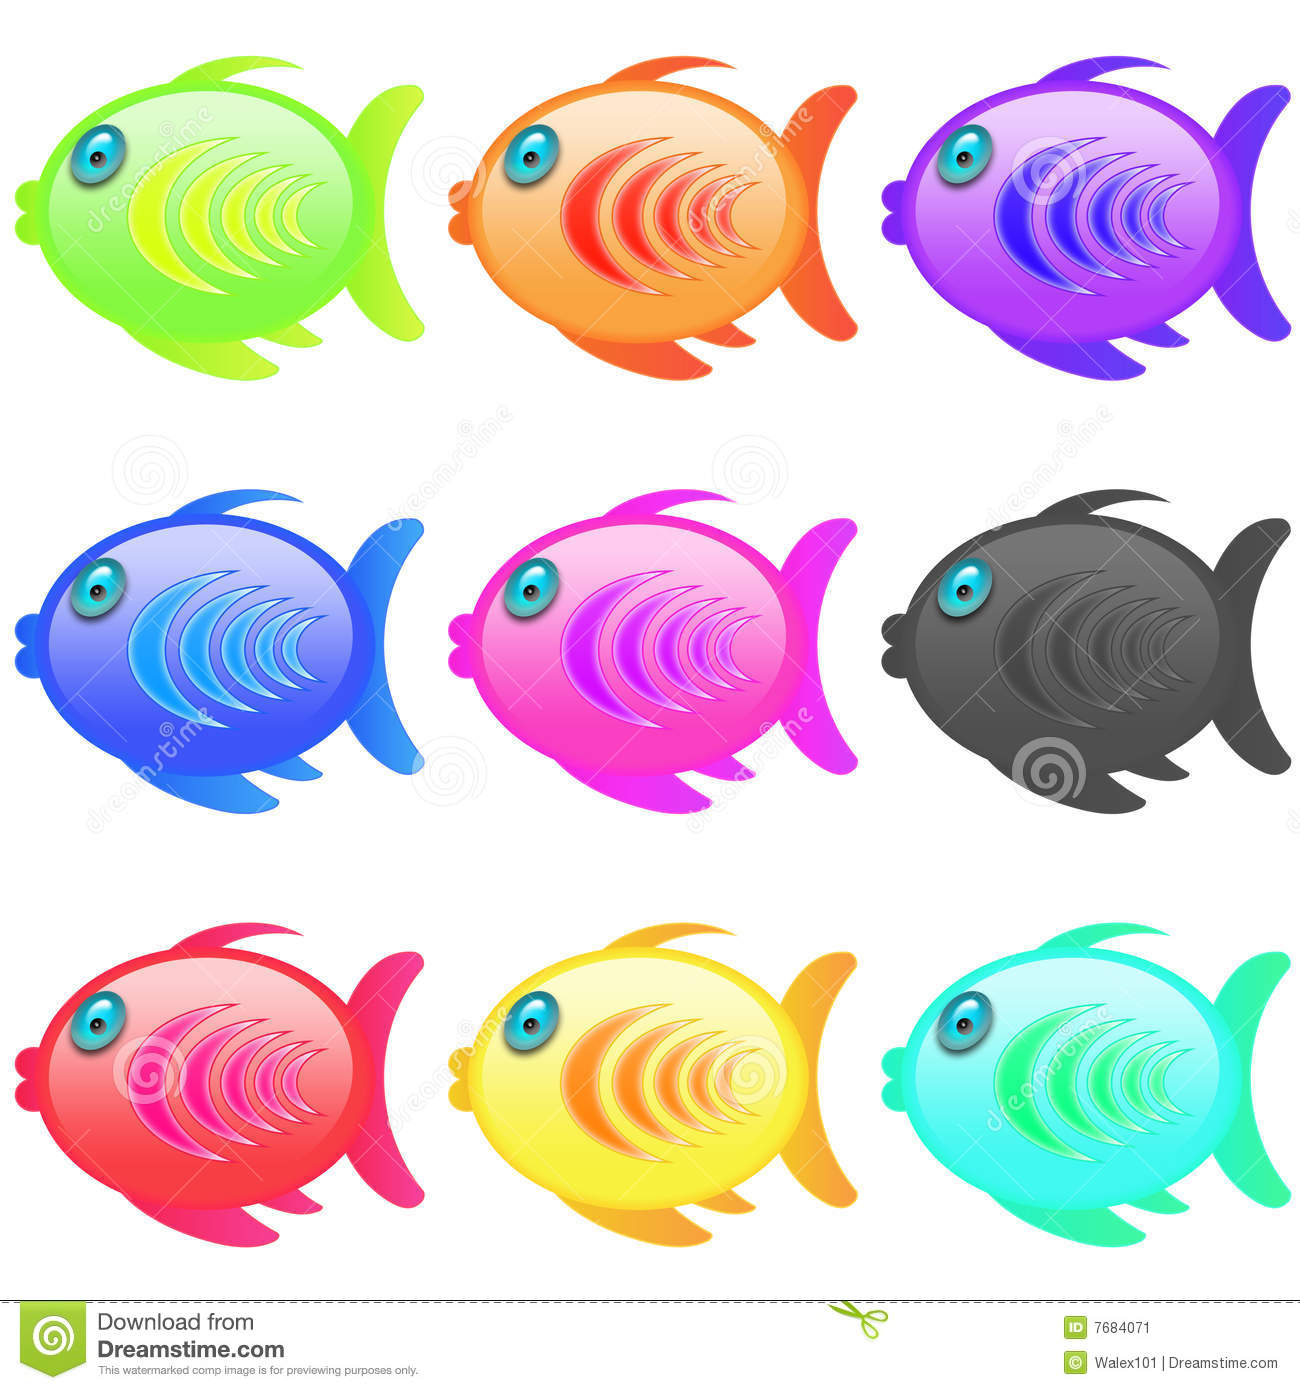 red fish clipart